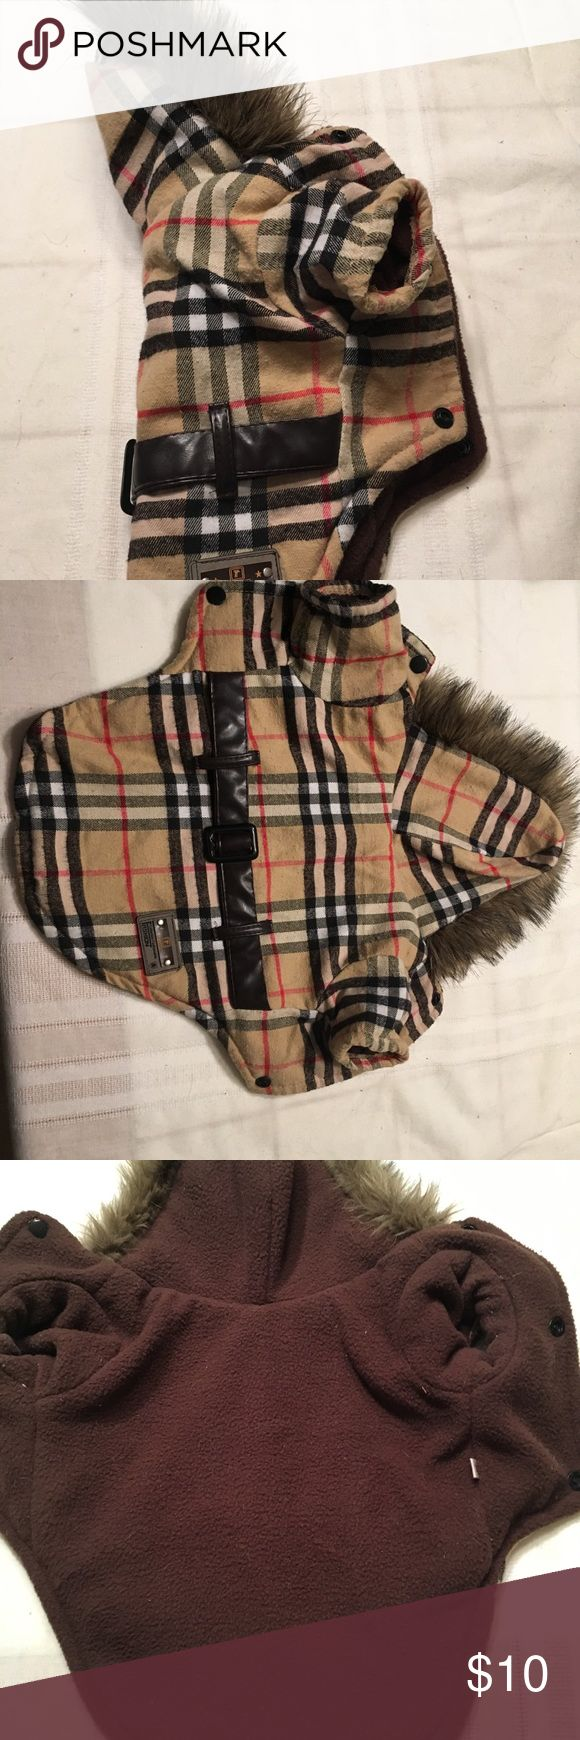 Dog faux Burberry print coat with fur collar Used super cute dog coat. It says it is a size medium but it fits like a small. I am sad to be getting rid of it but my dog has grown out of it. Other